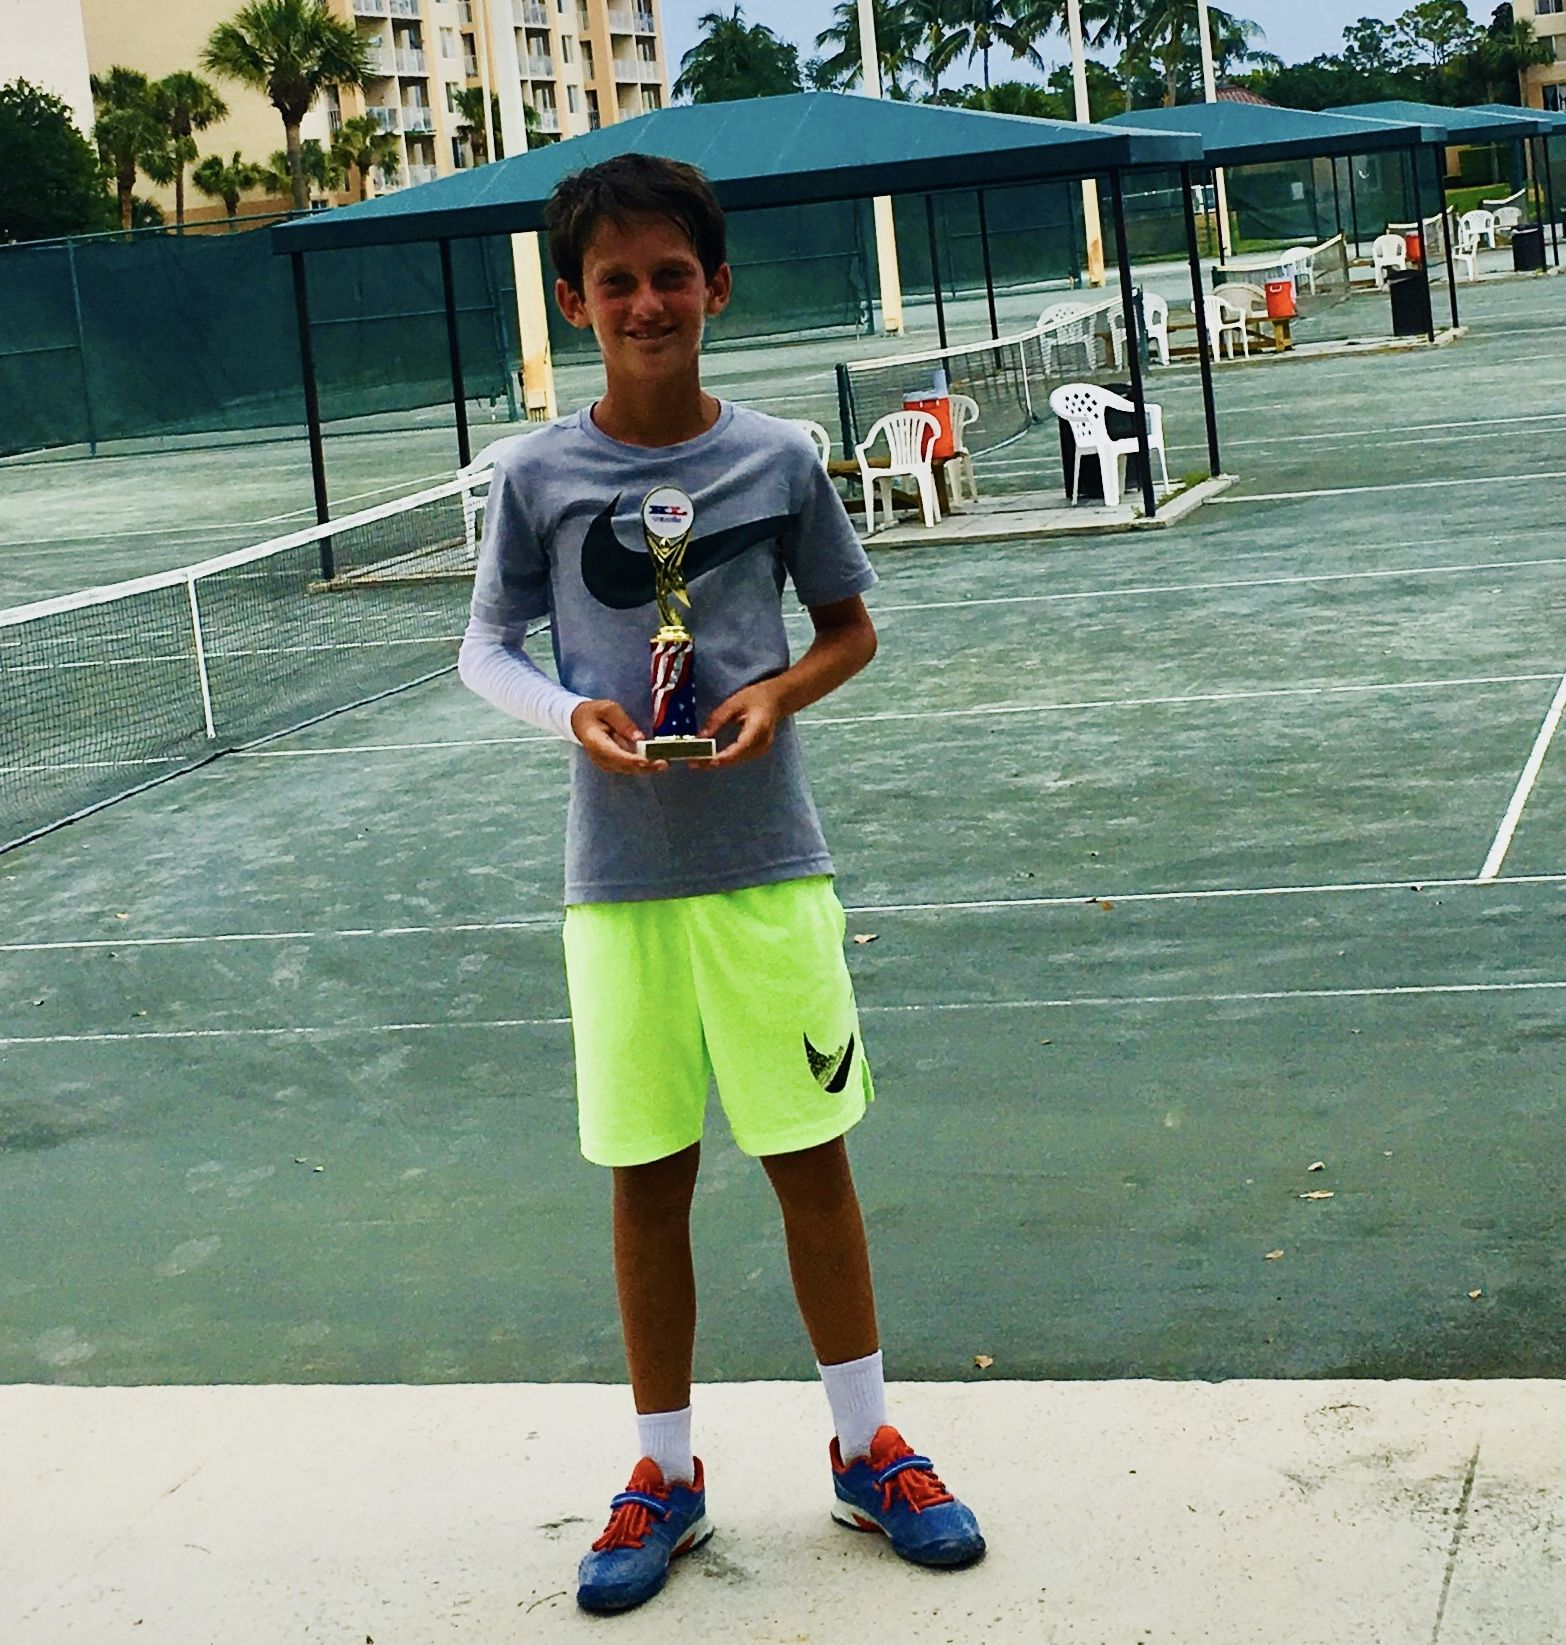 Congratulations To Jaden Brady For Winning The Boys 12 Tennis Club Of Palm Beach Tournament In West Palm Beach Florida Well Done Tennis Clubs Champion Elite